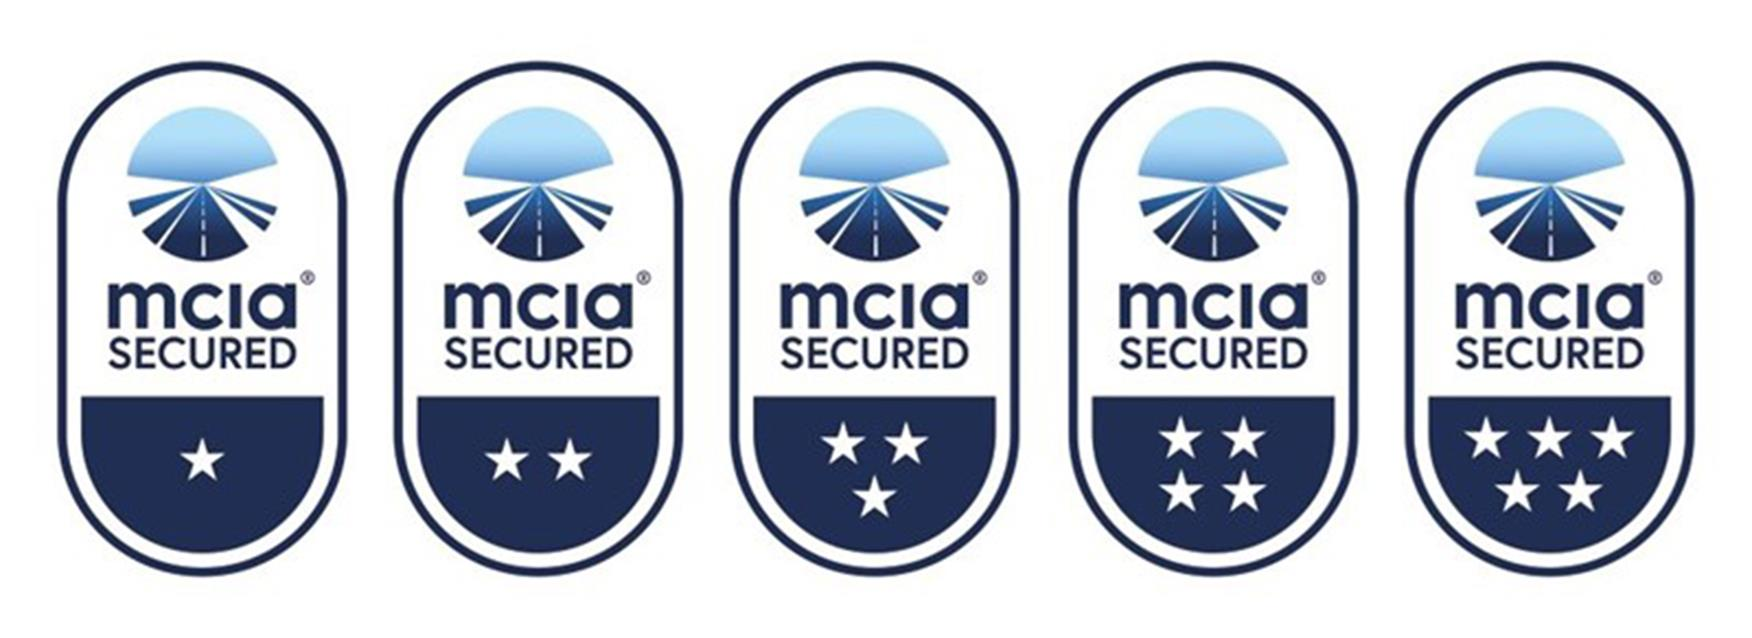 MCIA sold secure star ratings